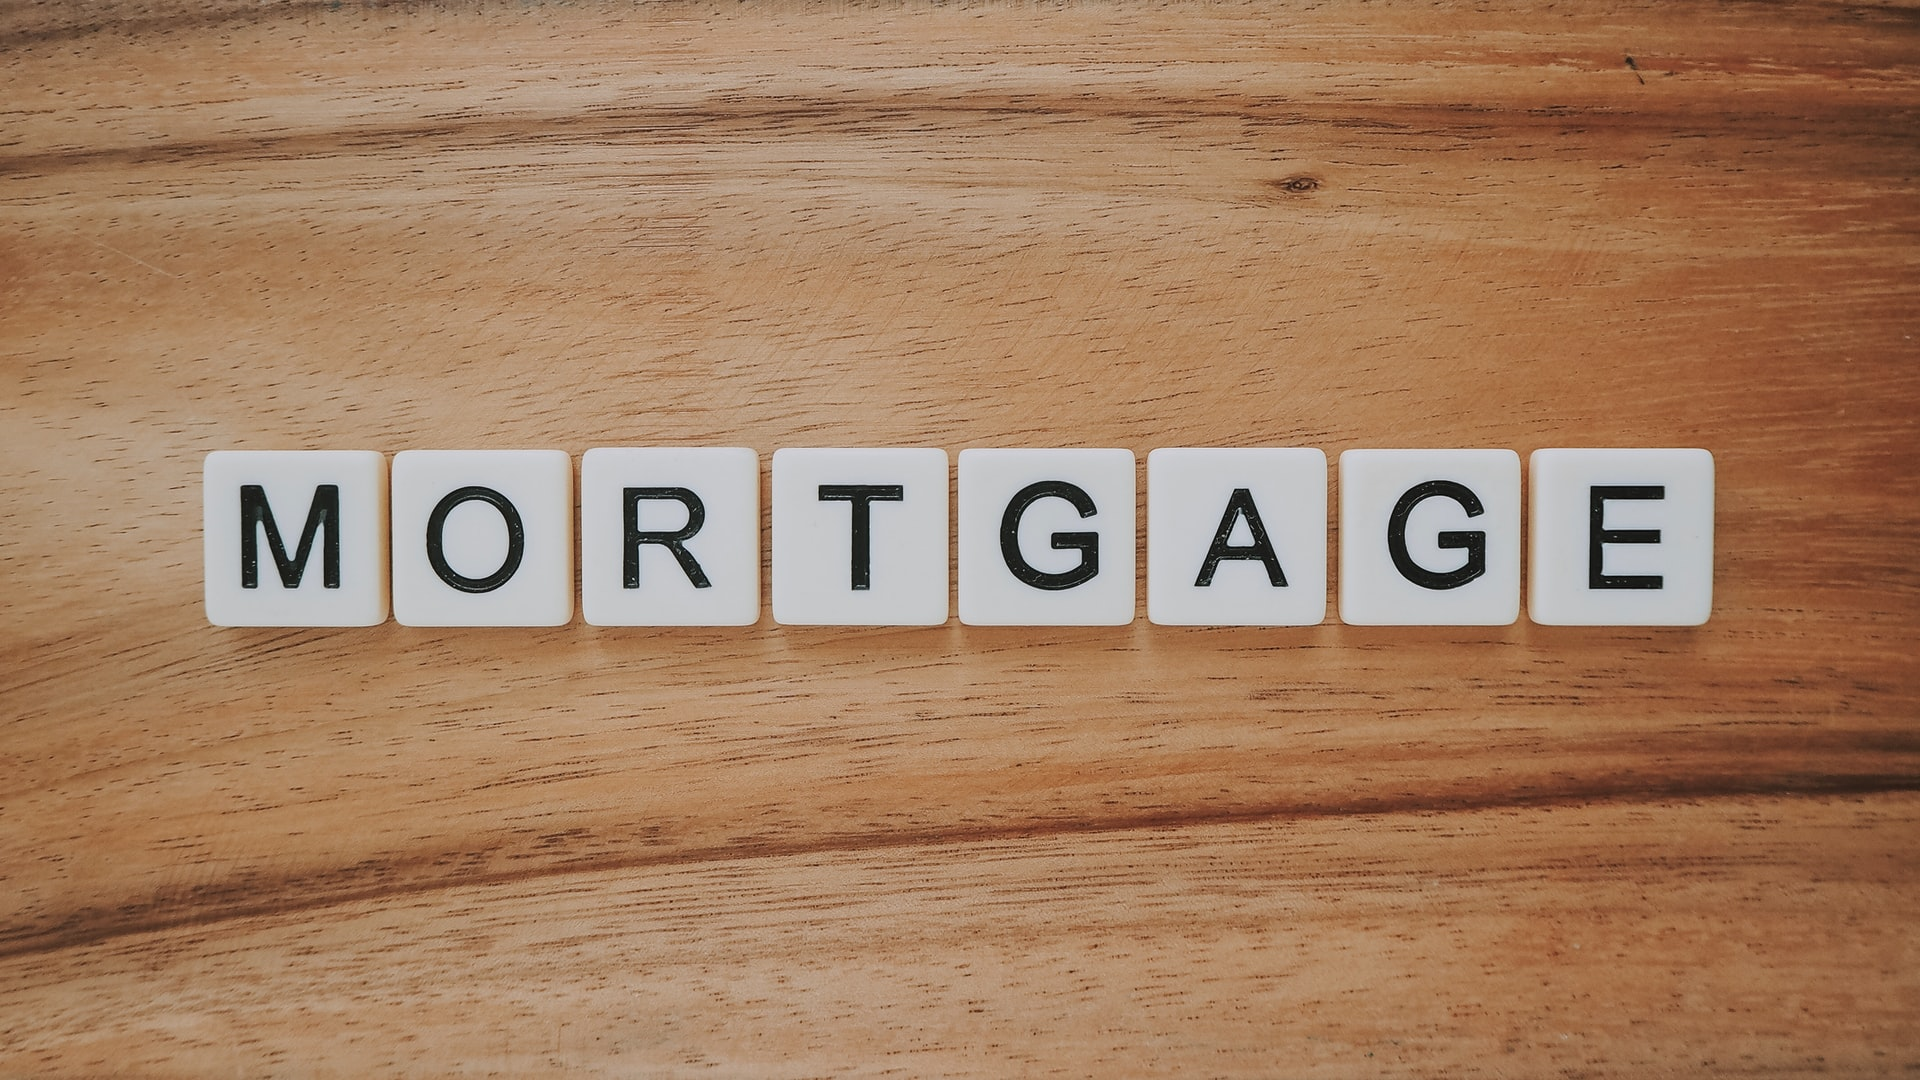 What Kind of Mortgage is Best for You?